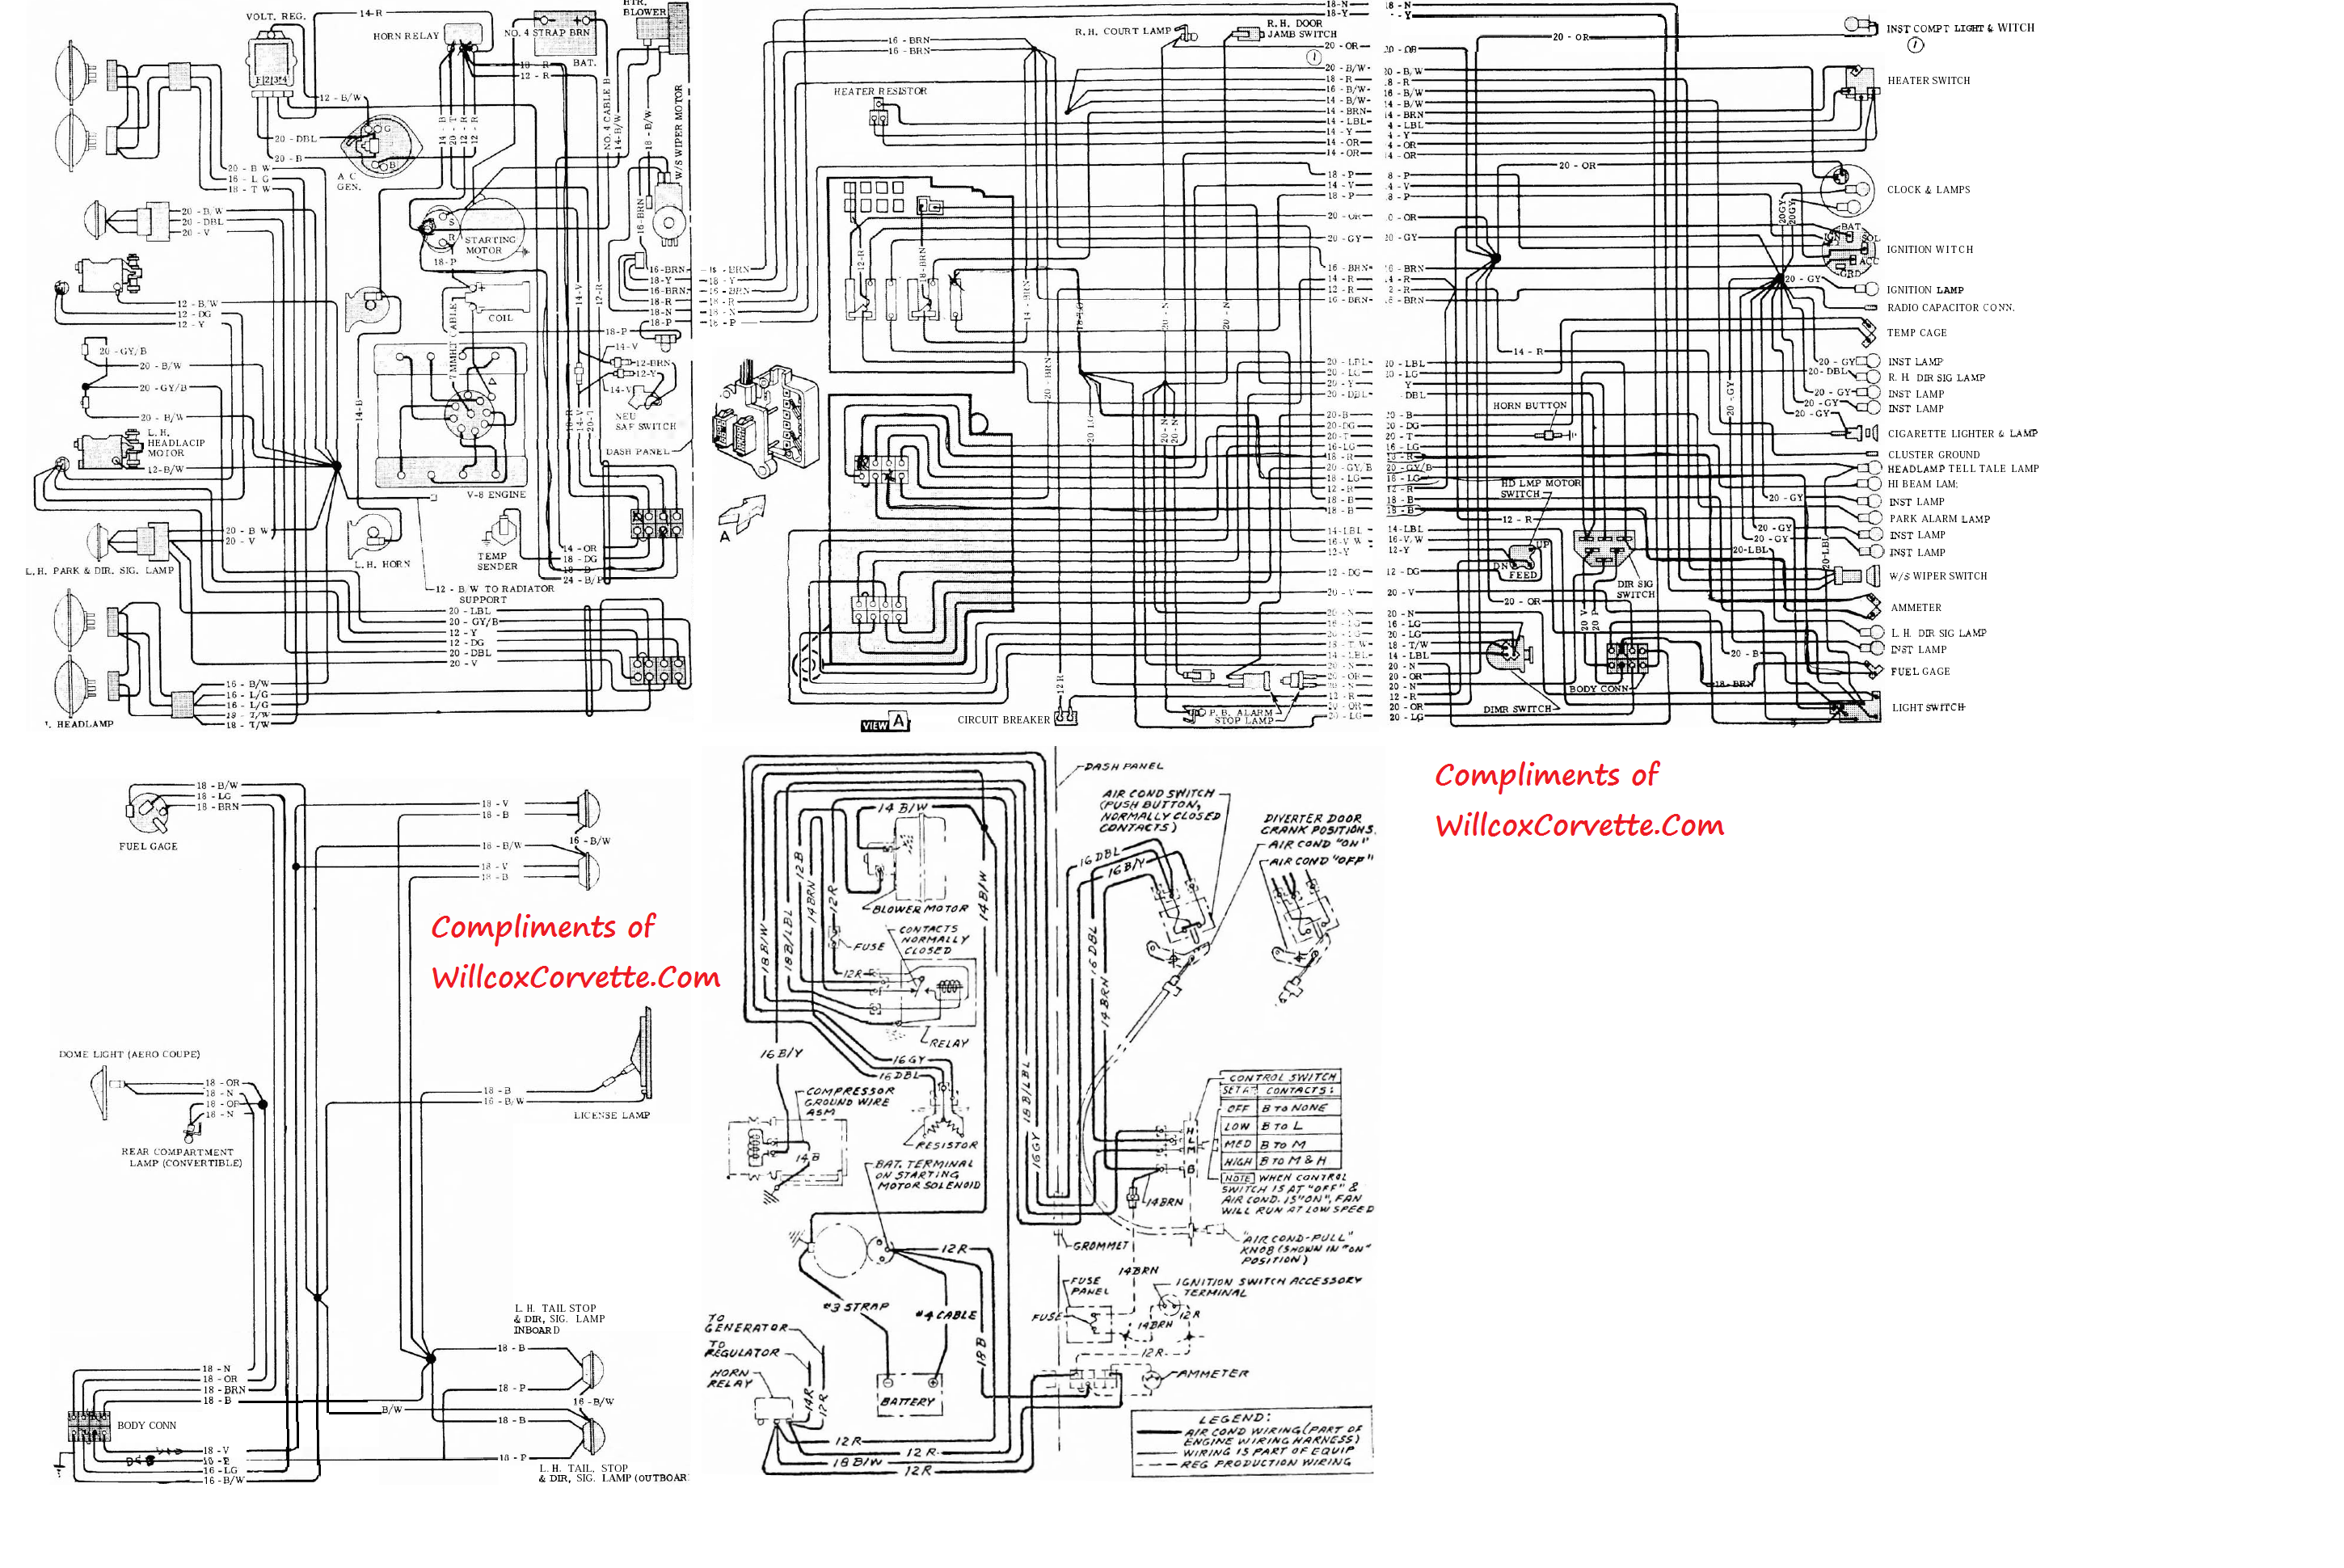 1963 Corvette Tracer Wiring Diagram Tracer Schematic 1979 corvette wiring diagrams wiring diagrams 1971 corvette wiring diagram pdf at mifinder.co